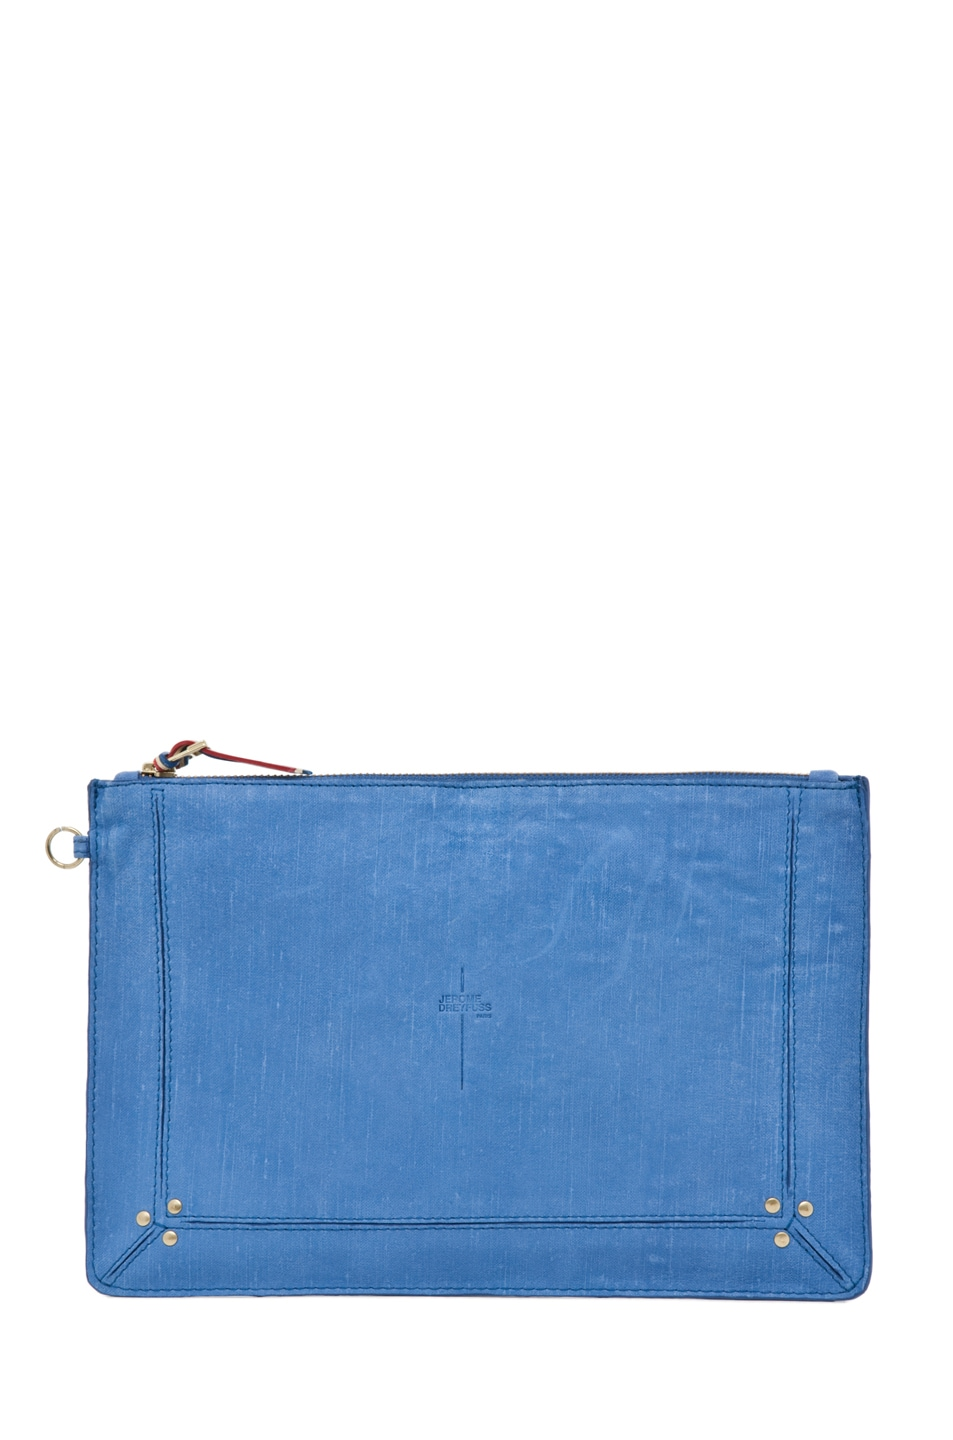 Image 1 of Jerome Dreyfuss Large Popoche Clutch in Denim Bleu